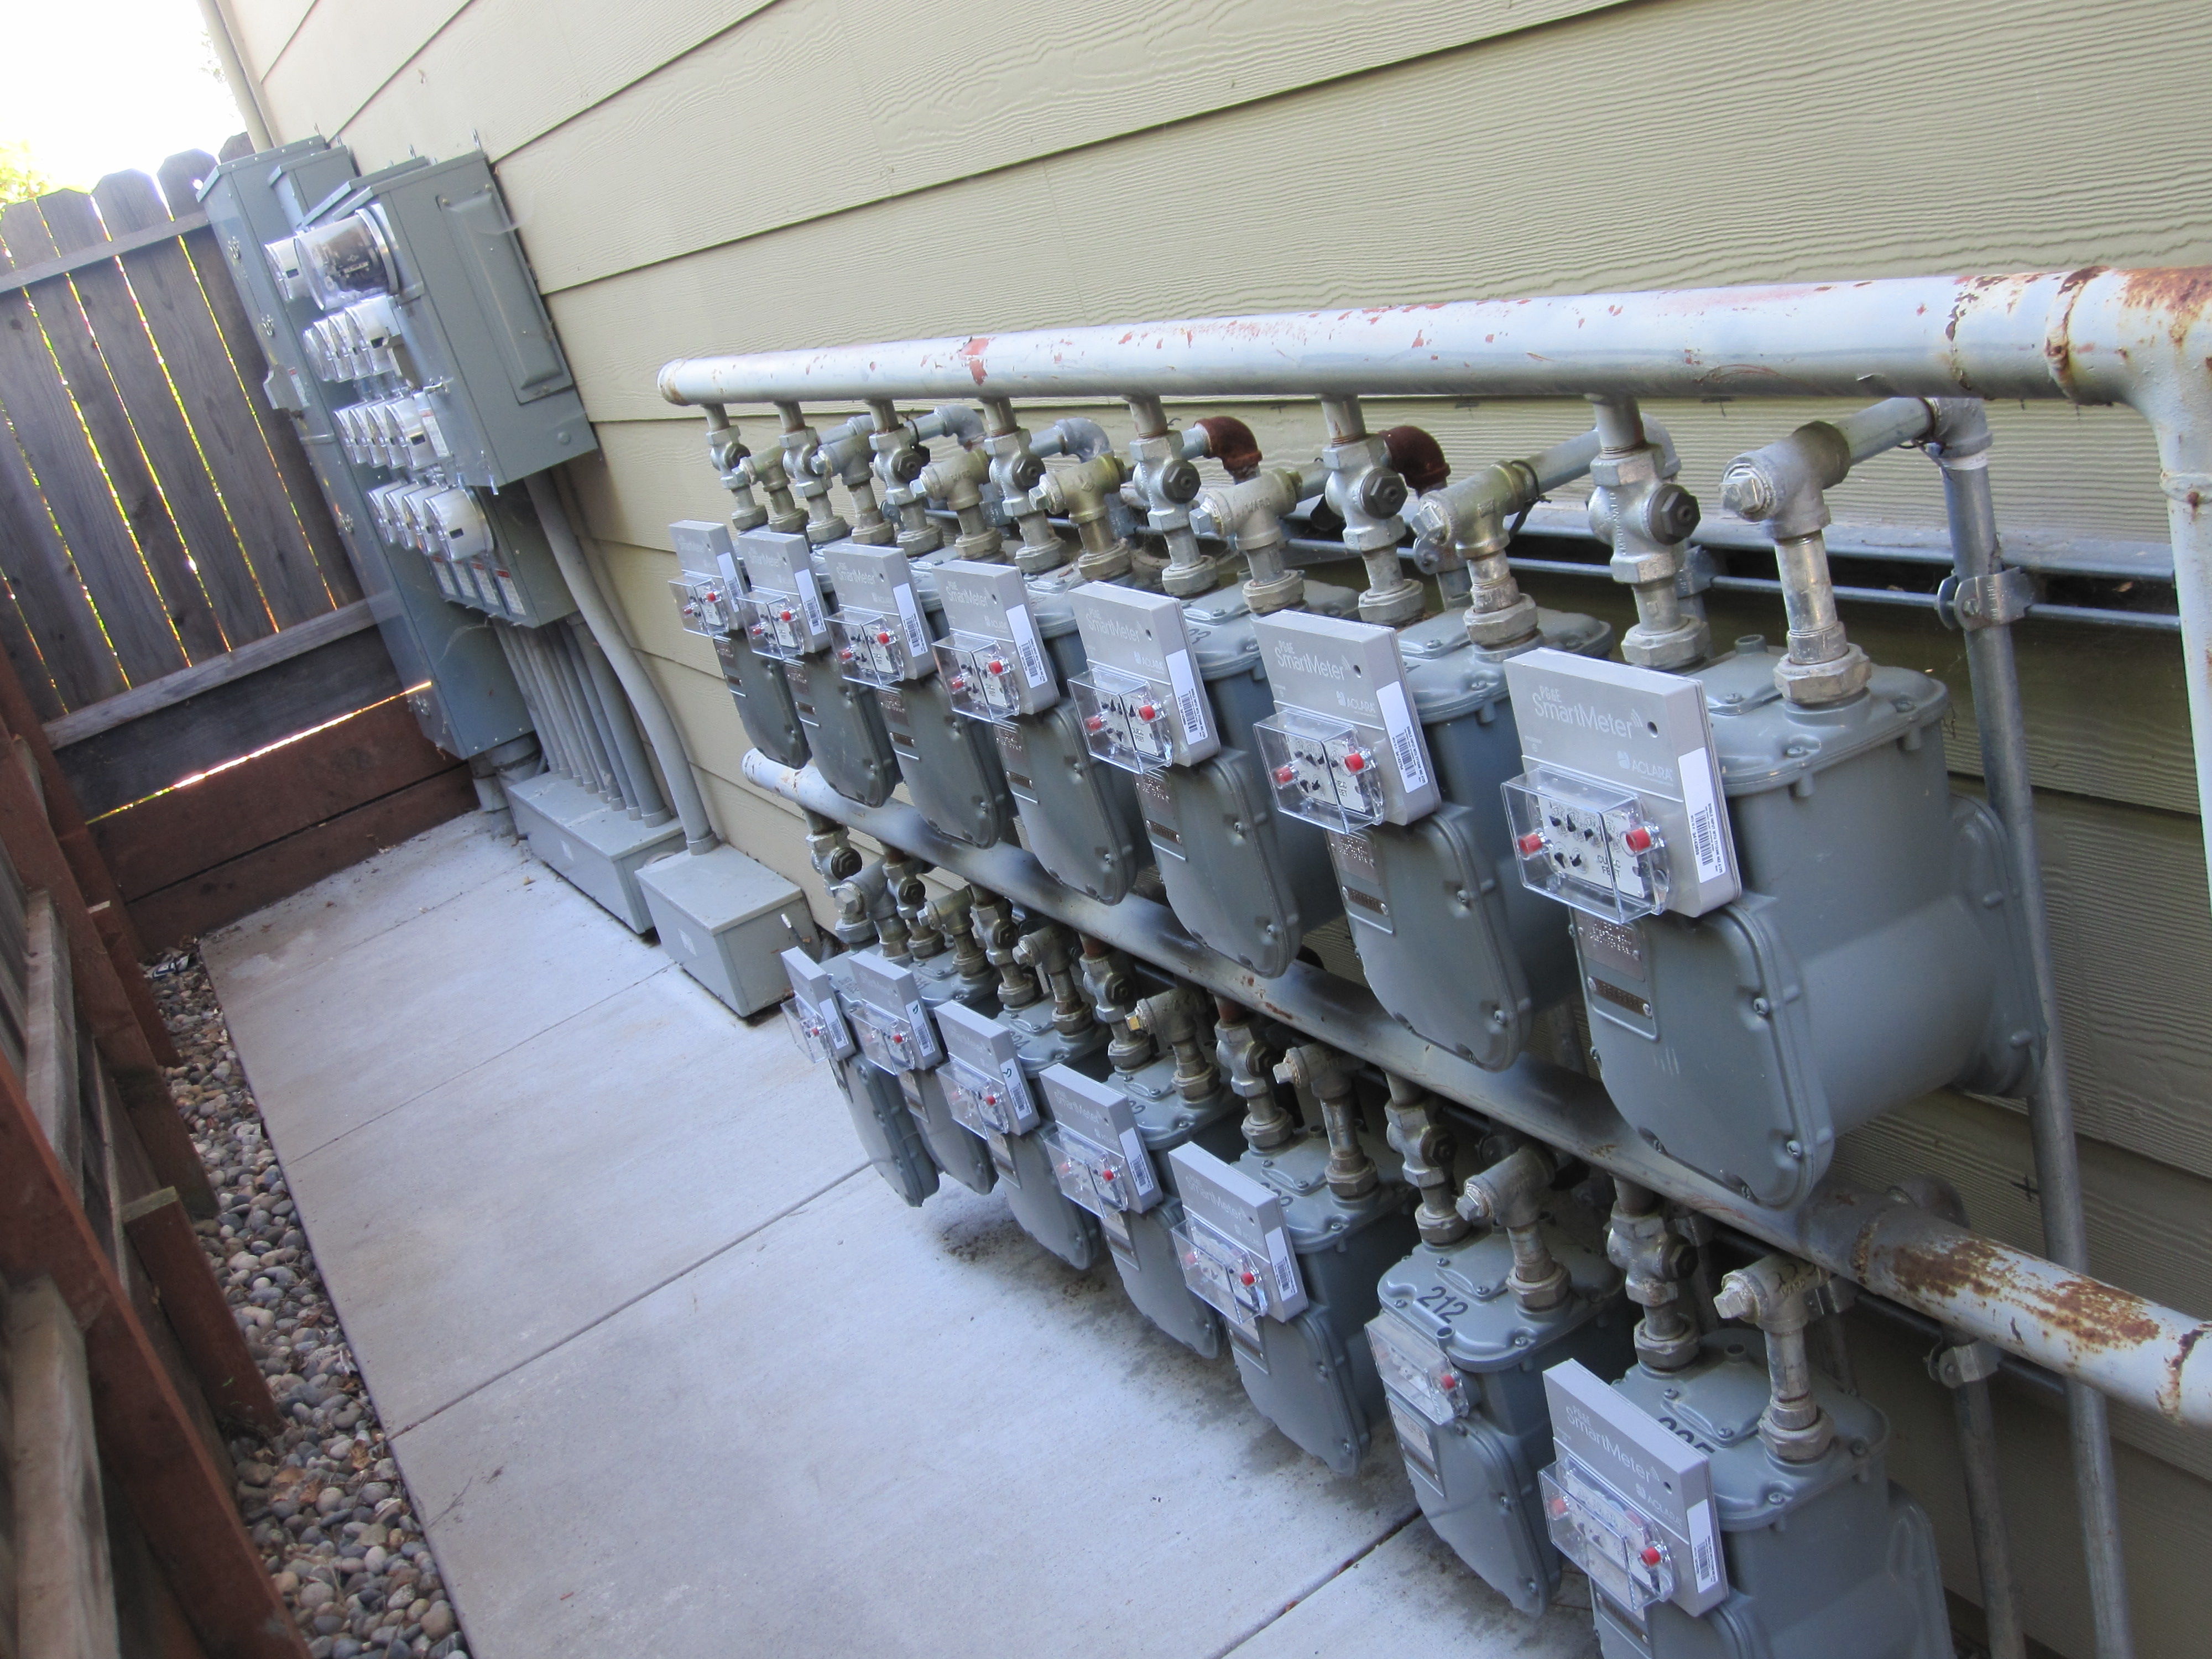 Installing a gas meter in the apartment. Household gas meters 50